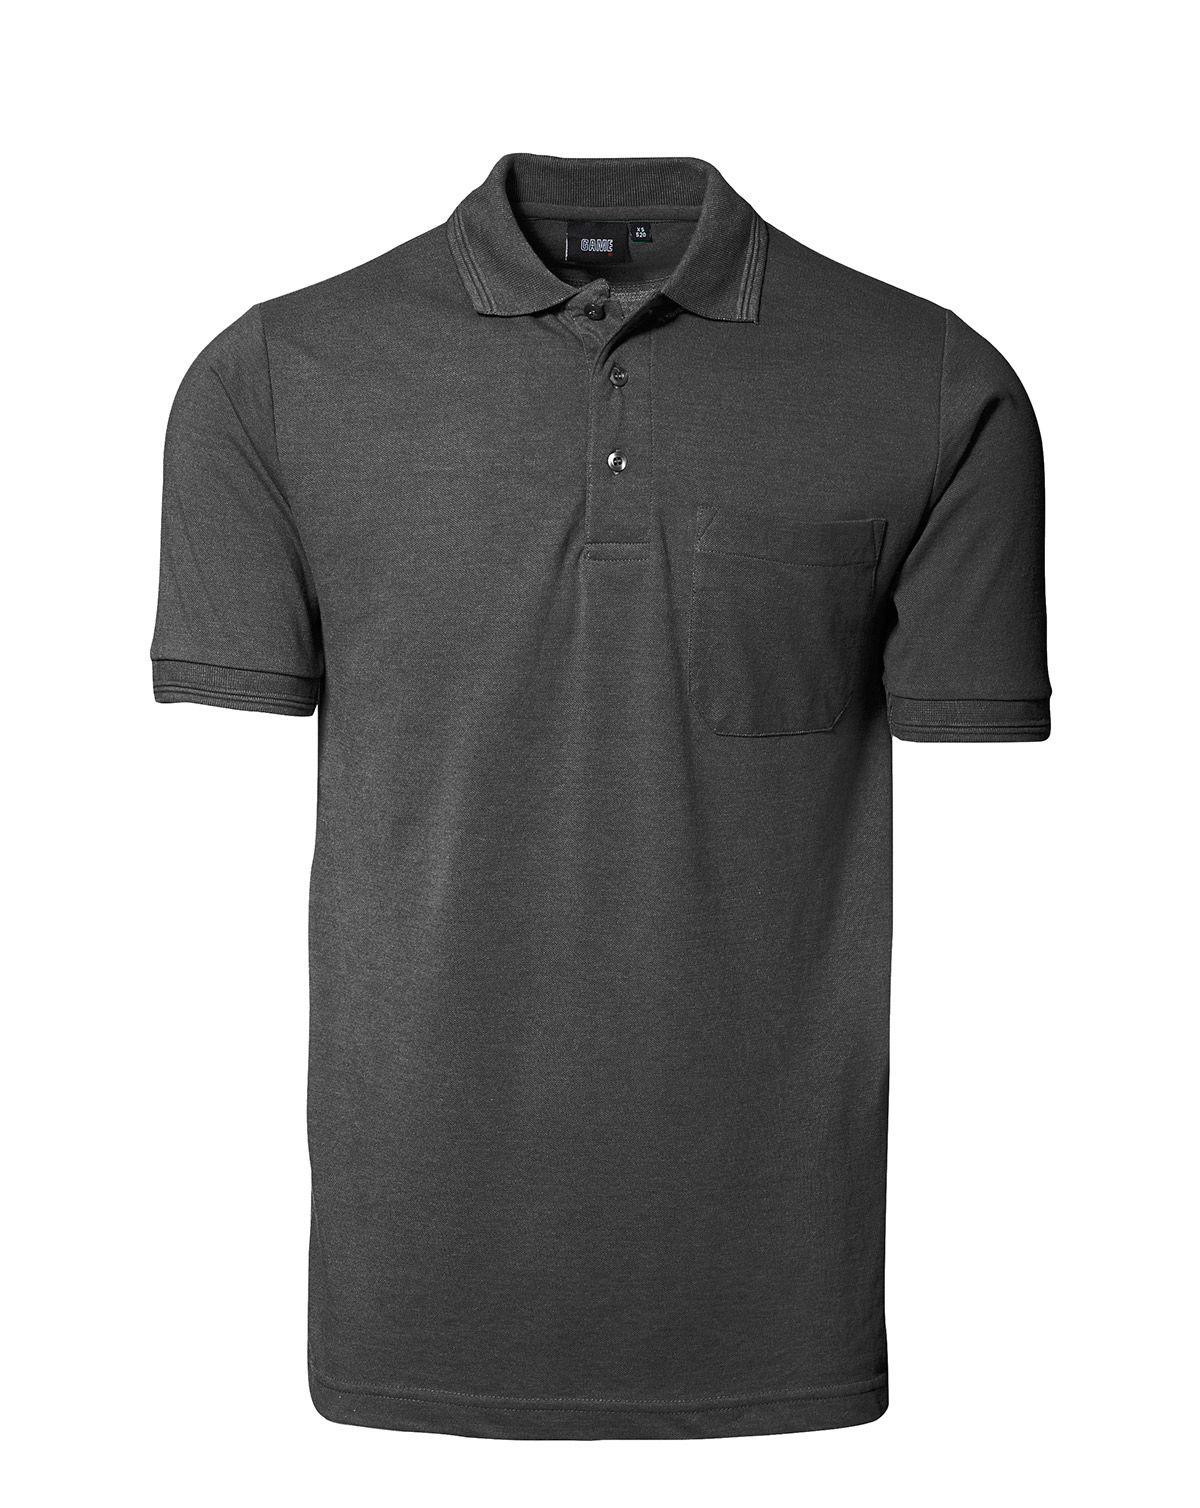 Image of   ID Klassisk Polo m. Lomme (Charcoal, 2XL)